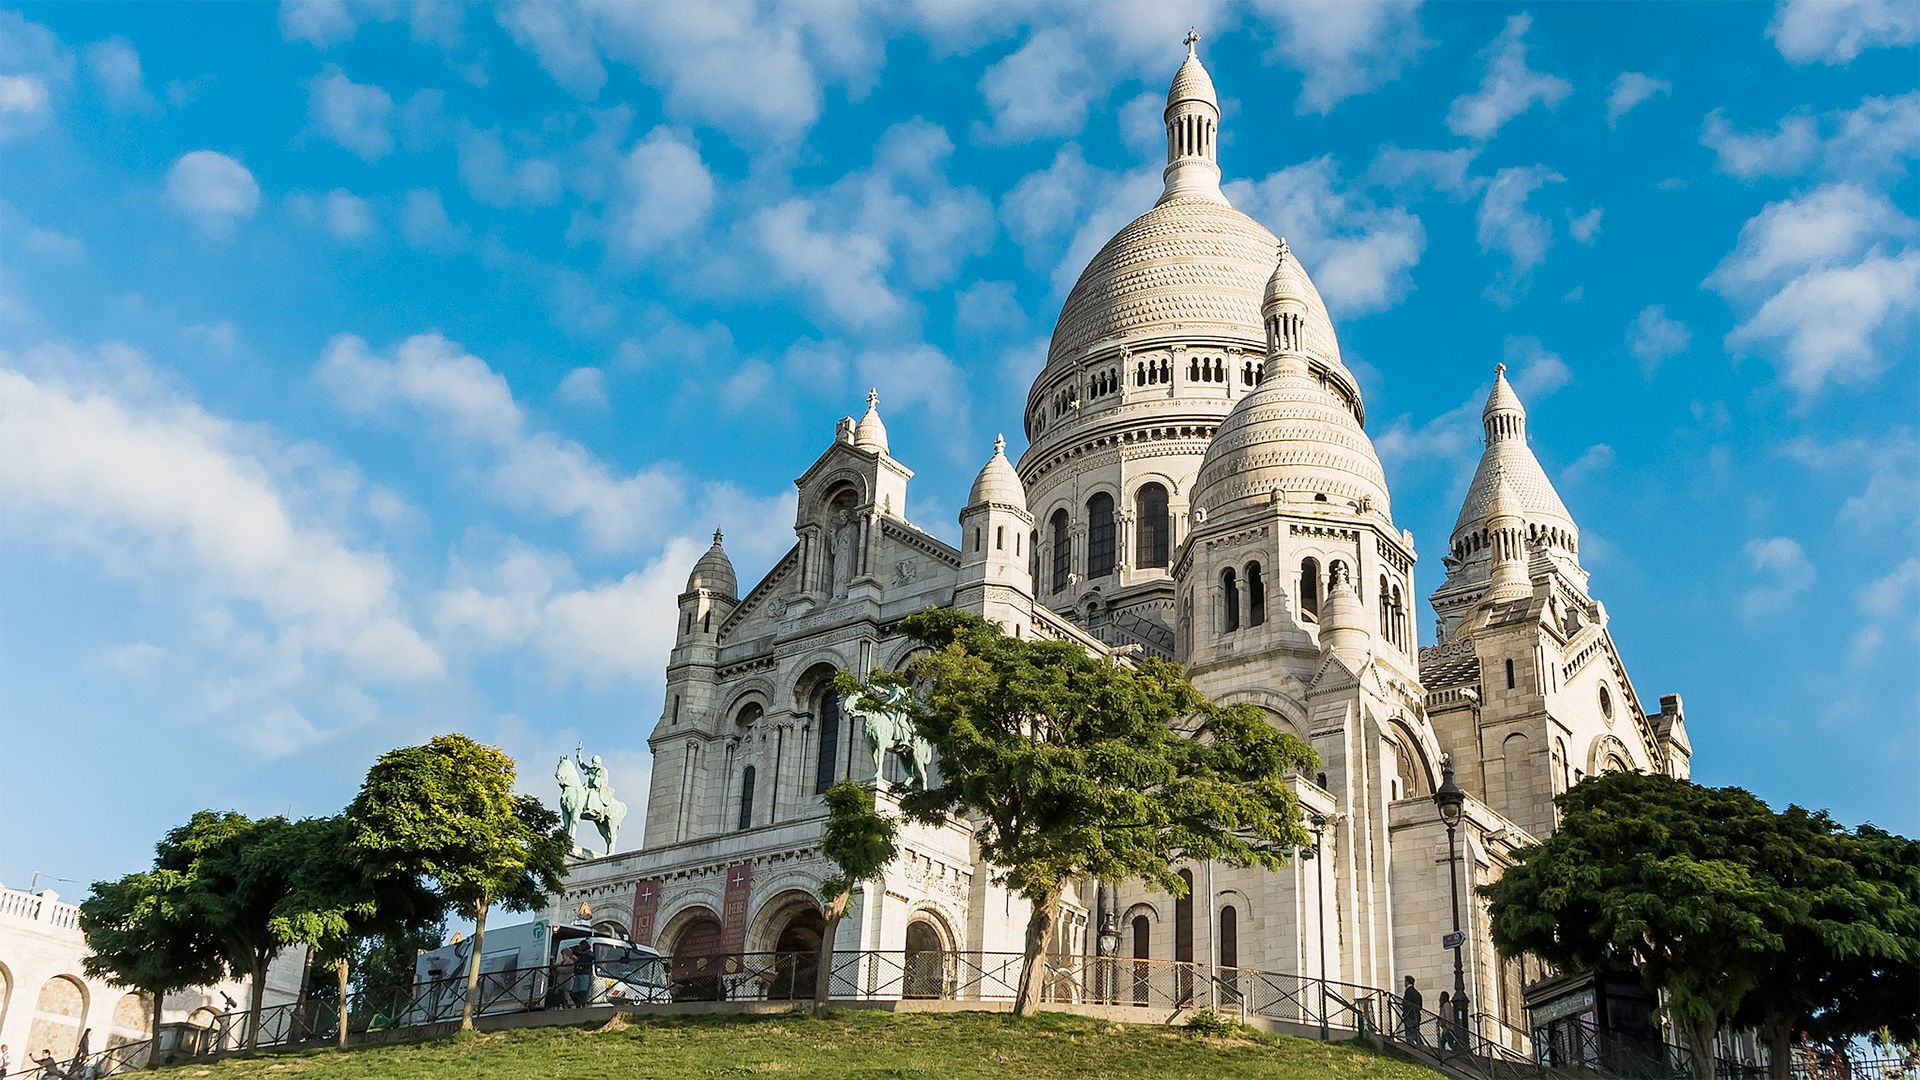 The Basilica of the Sacred Heart of Paris, commonly known as Sacré-Cœur Basilica and often simply Sacré-Cœur (in French, Basilique du Sacré-Cœur) is a Roman Catholic church dedicated to the Sacred Heart of Jesus, in Paris, France. The basilica is located at the summit of the butte Montmartre, the highest point in the city. Mark Fischer, CC BY-SA 2.0 via Wikimedia Commons